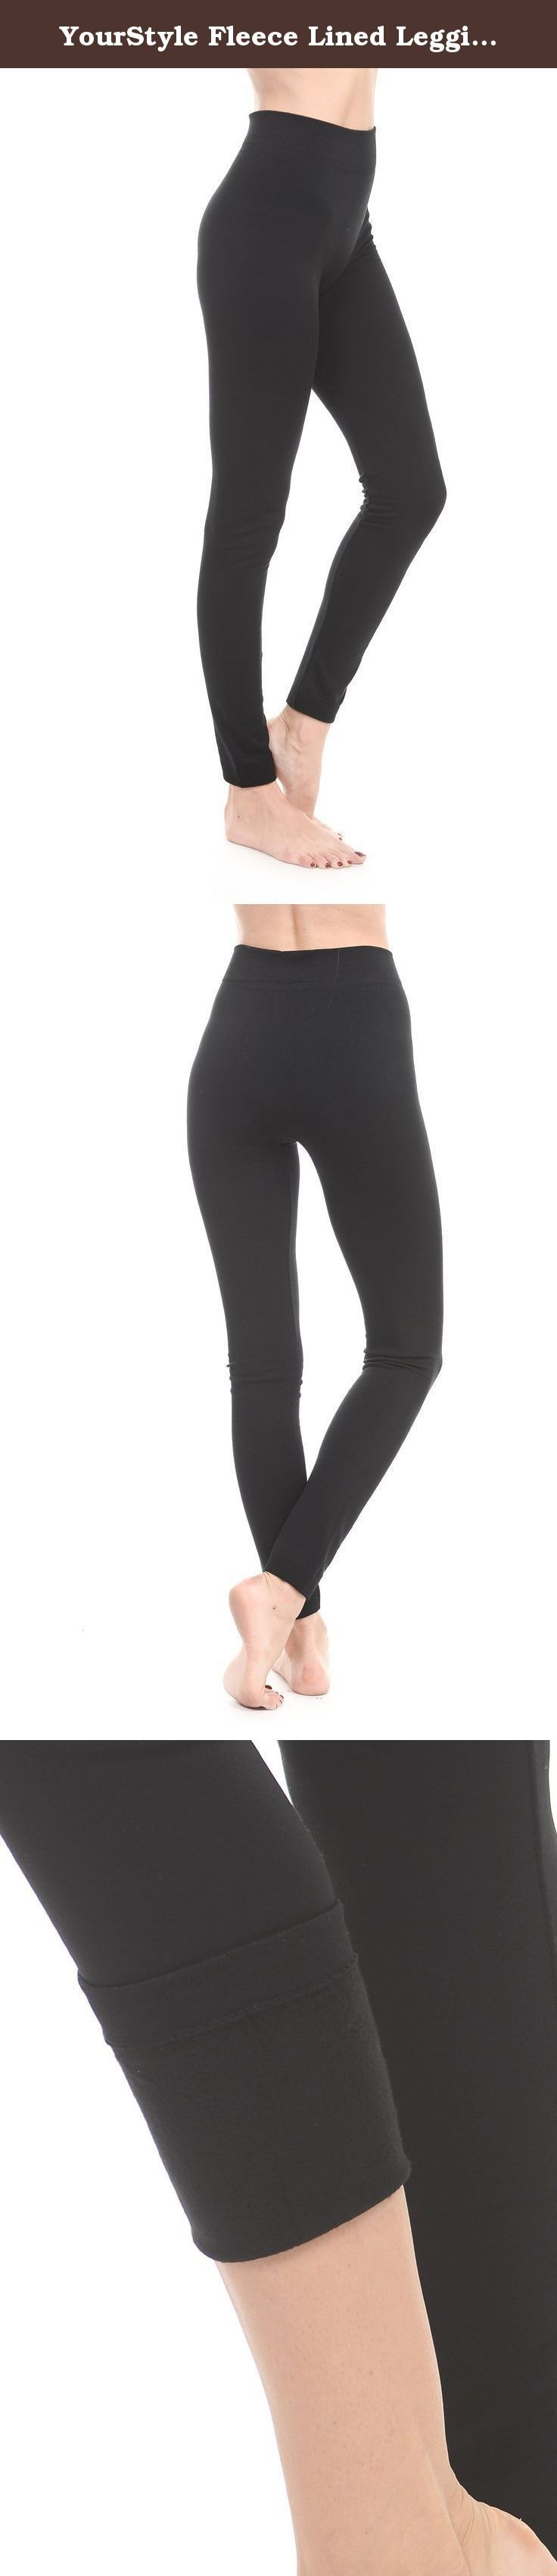 YourStyle Fleece Lined Leggings (One Size) (One Size, Black). The Celine seamless fleece leggings is the perfect pair leggings for indoor/outdoor winter activities. These leggings have 175 Grams in weight density. Just picture a nice comfortable fleece pull-over, but for your legs. Your general sweat pants doesn't even stand a chance, in comparison. With the look and feel the Celine can deliver. The Celine seamless fleece leggings are premium in material content. They're essential for…